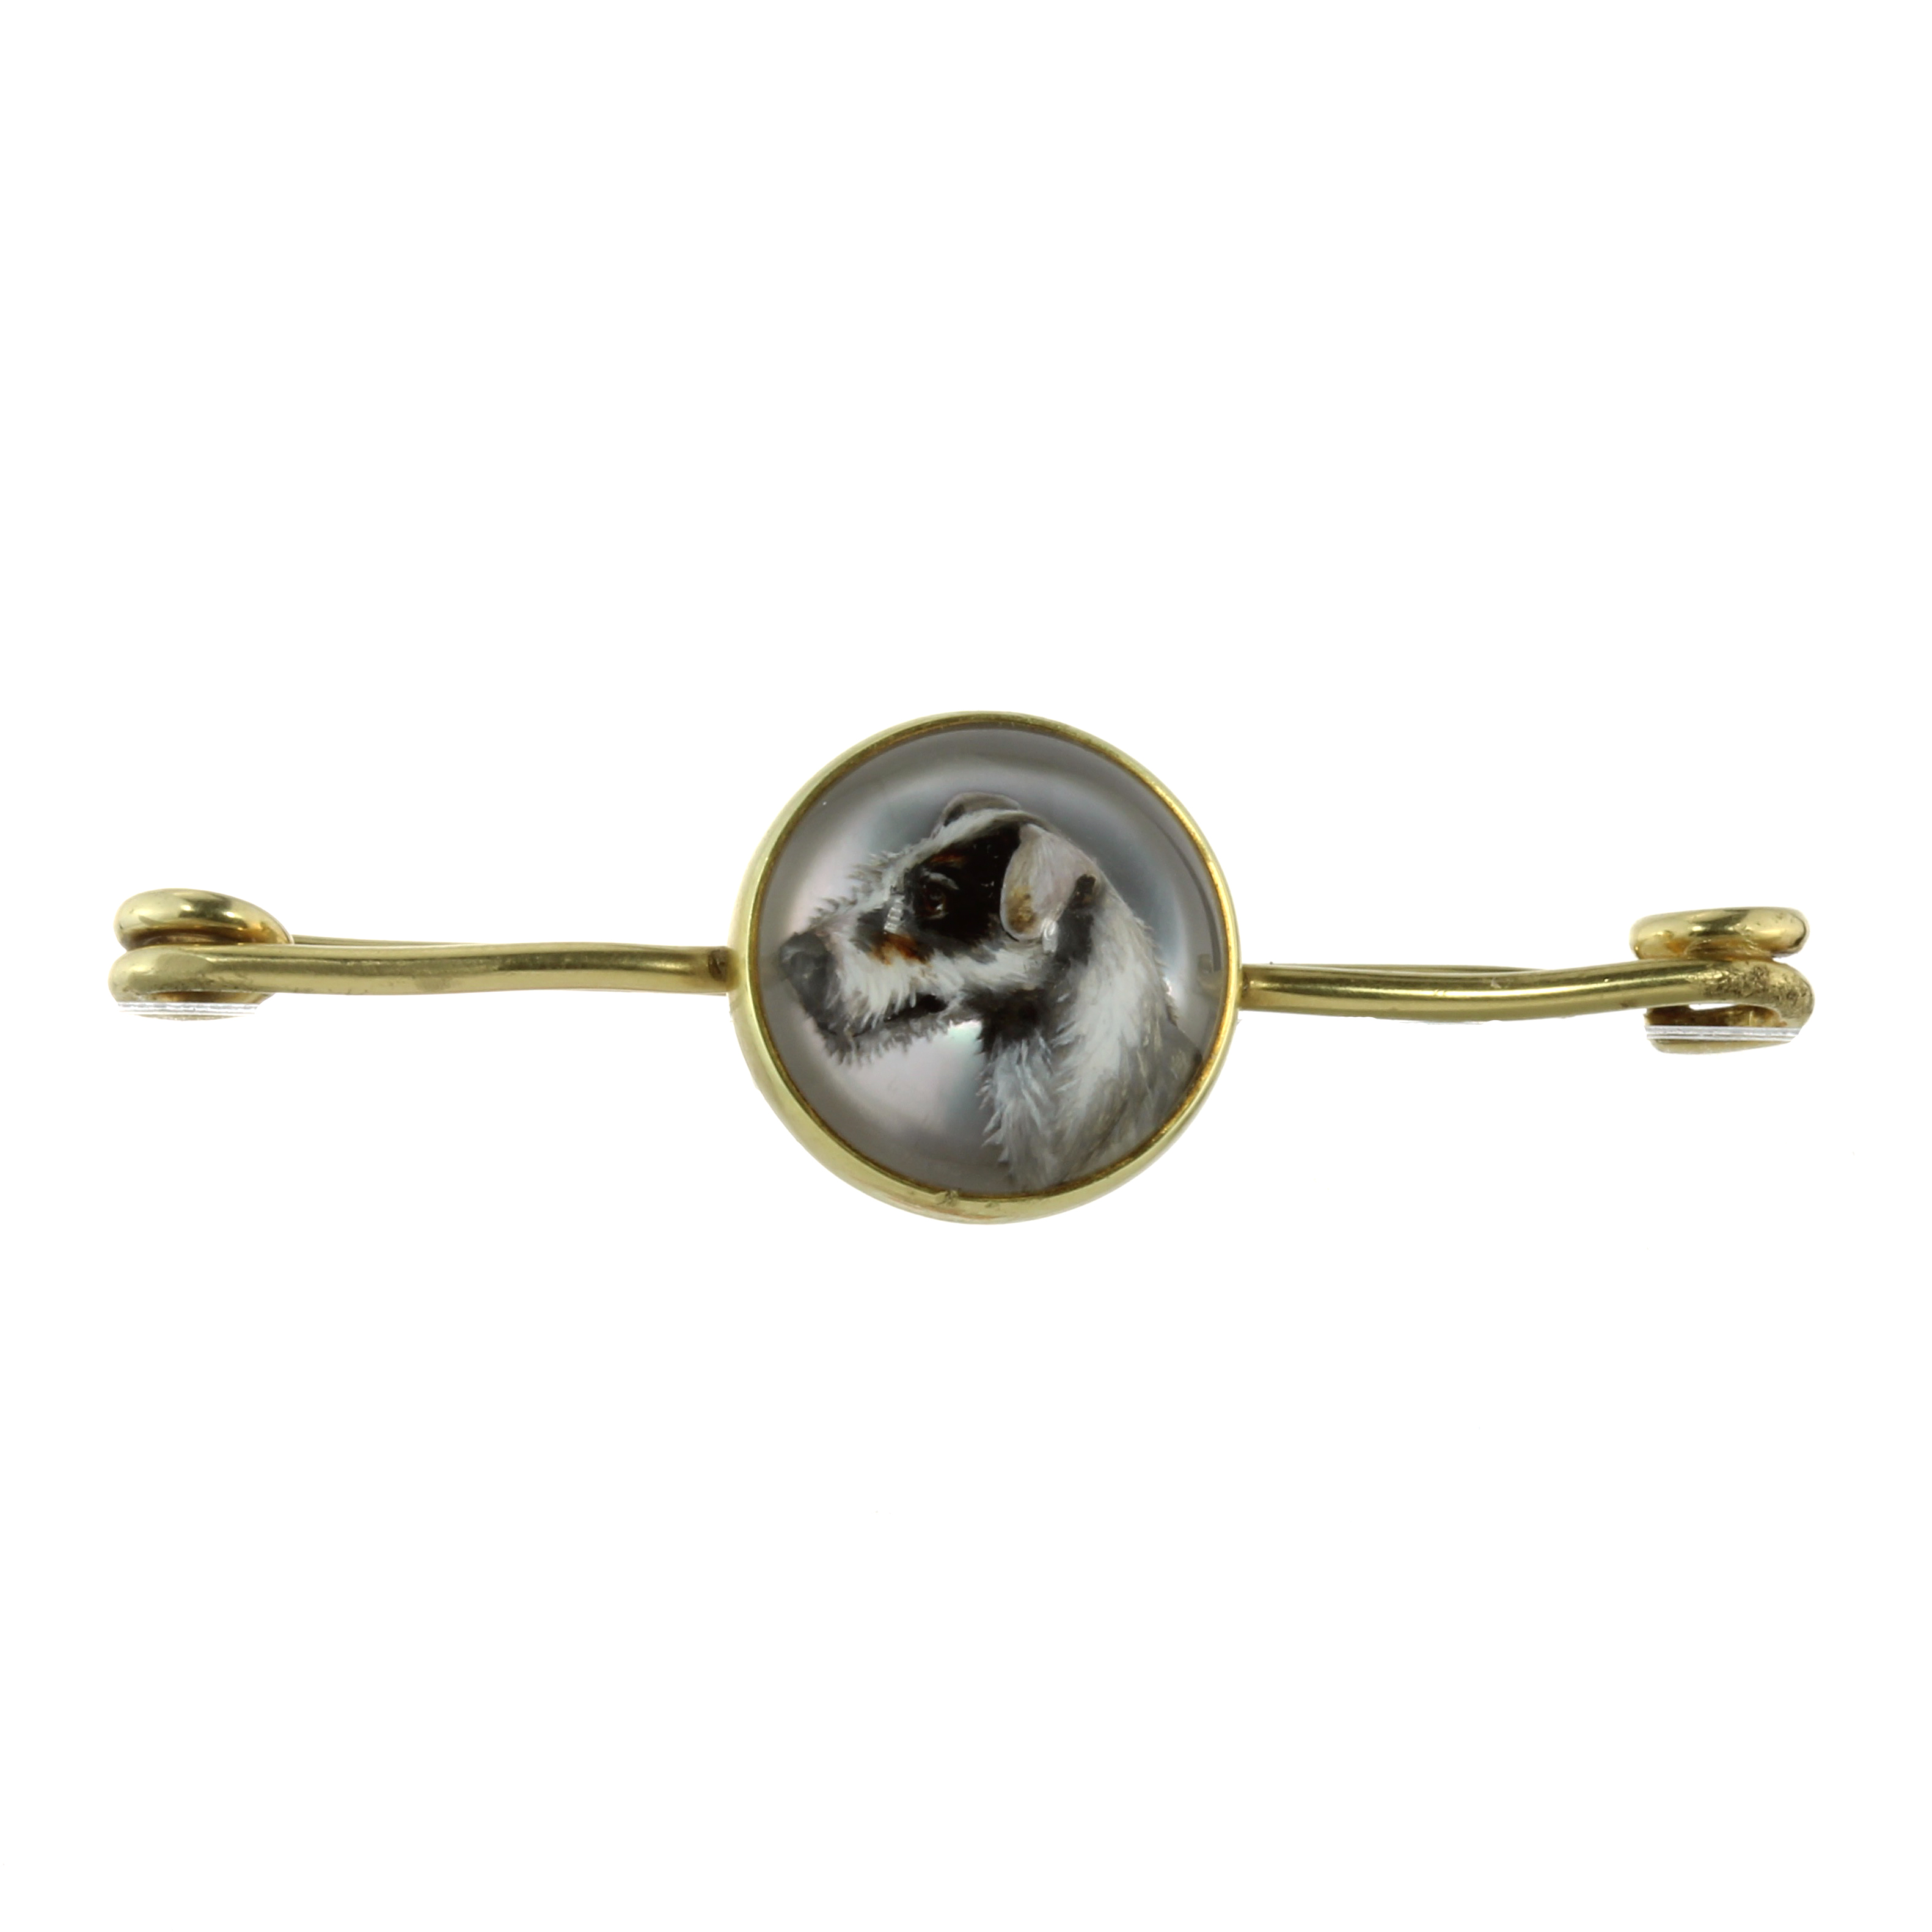 AN ESSEX CRYSTAL DOG BROOCH, TIFFANY & CO in 14ct yellow gold, the plain bar brooch set to the front